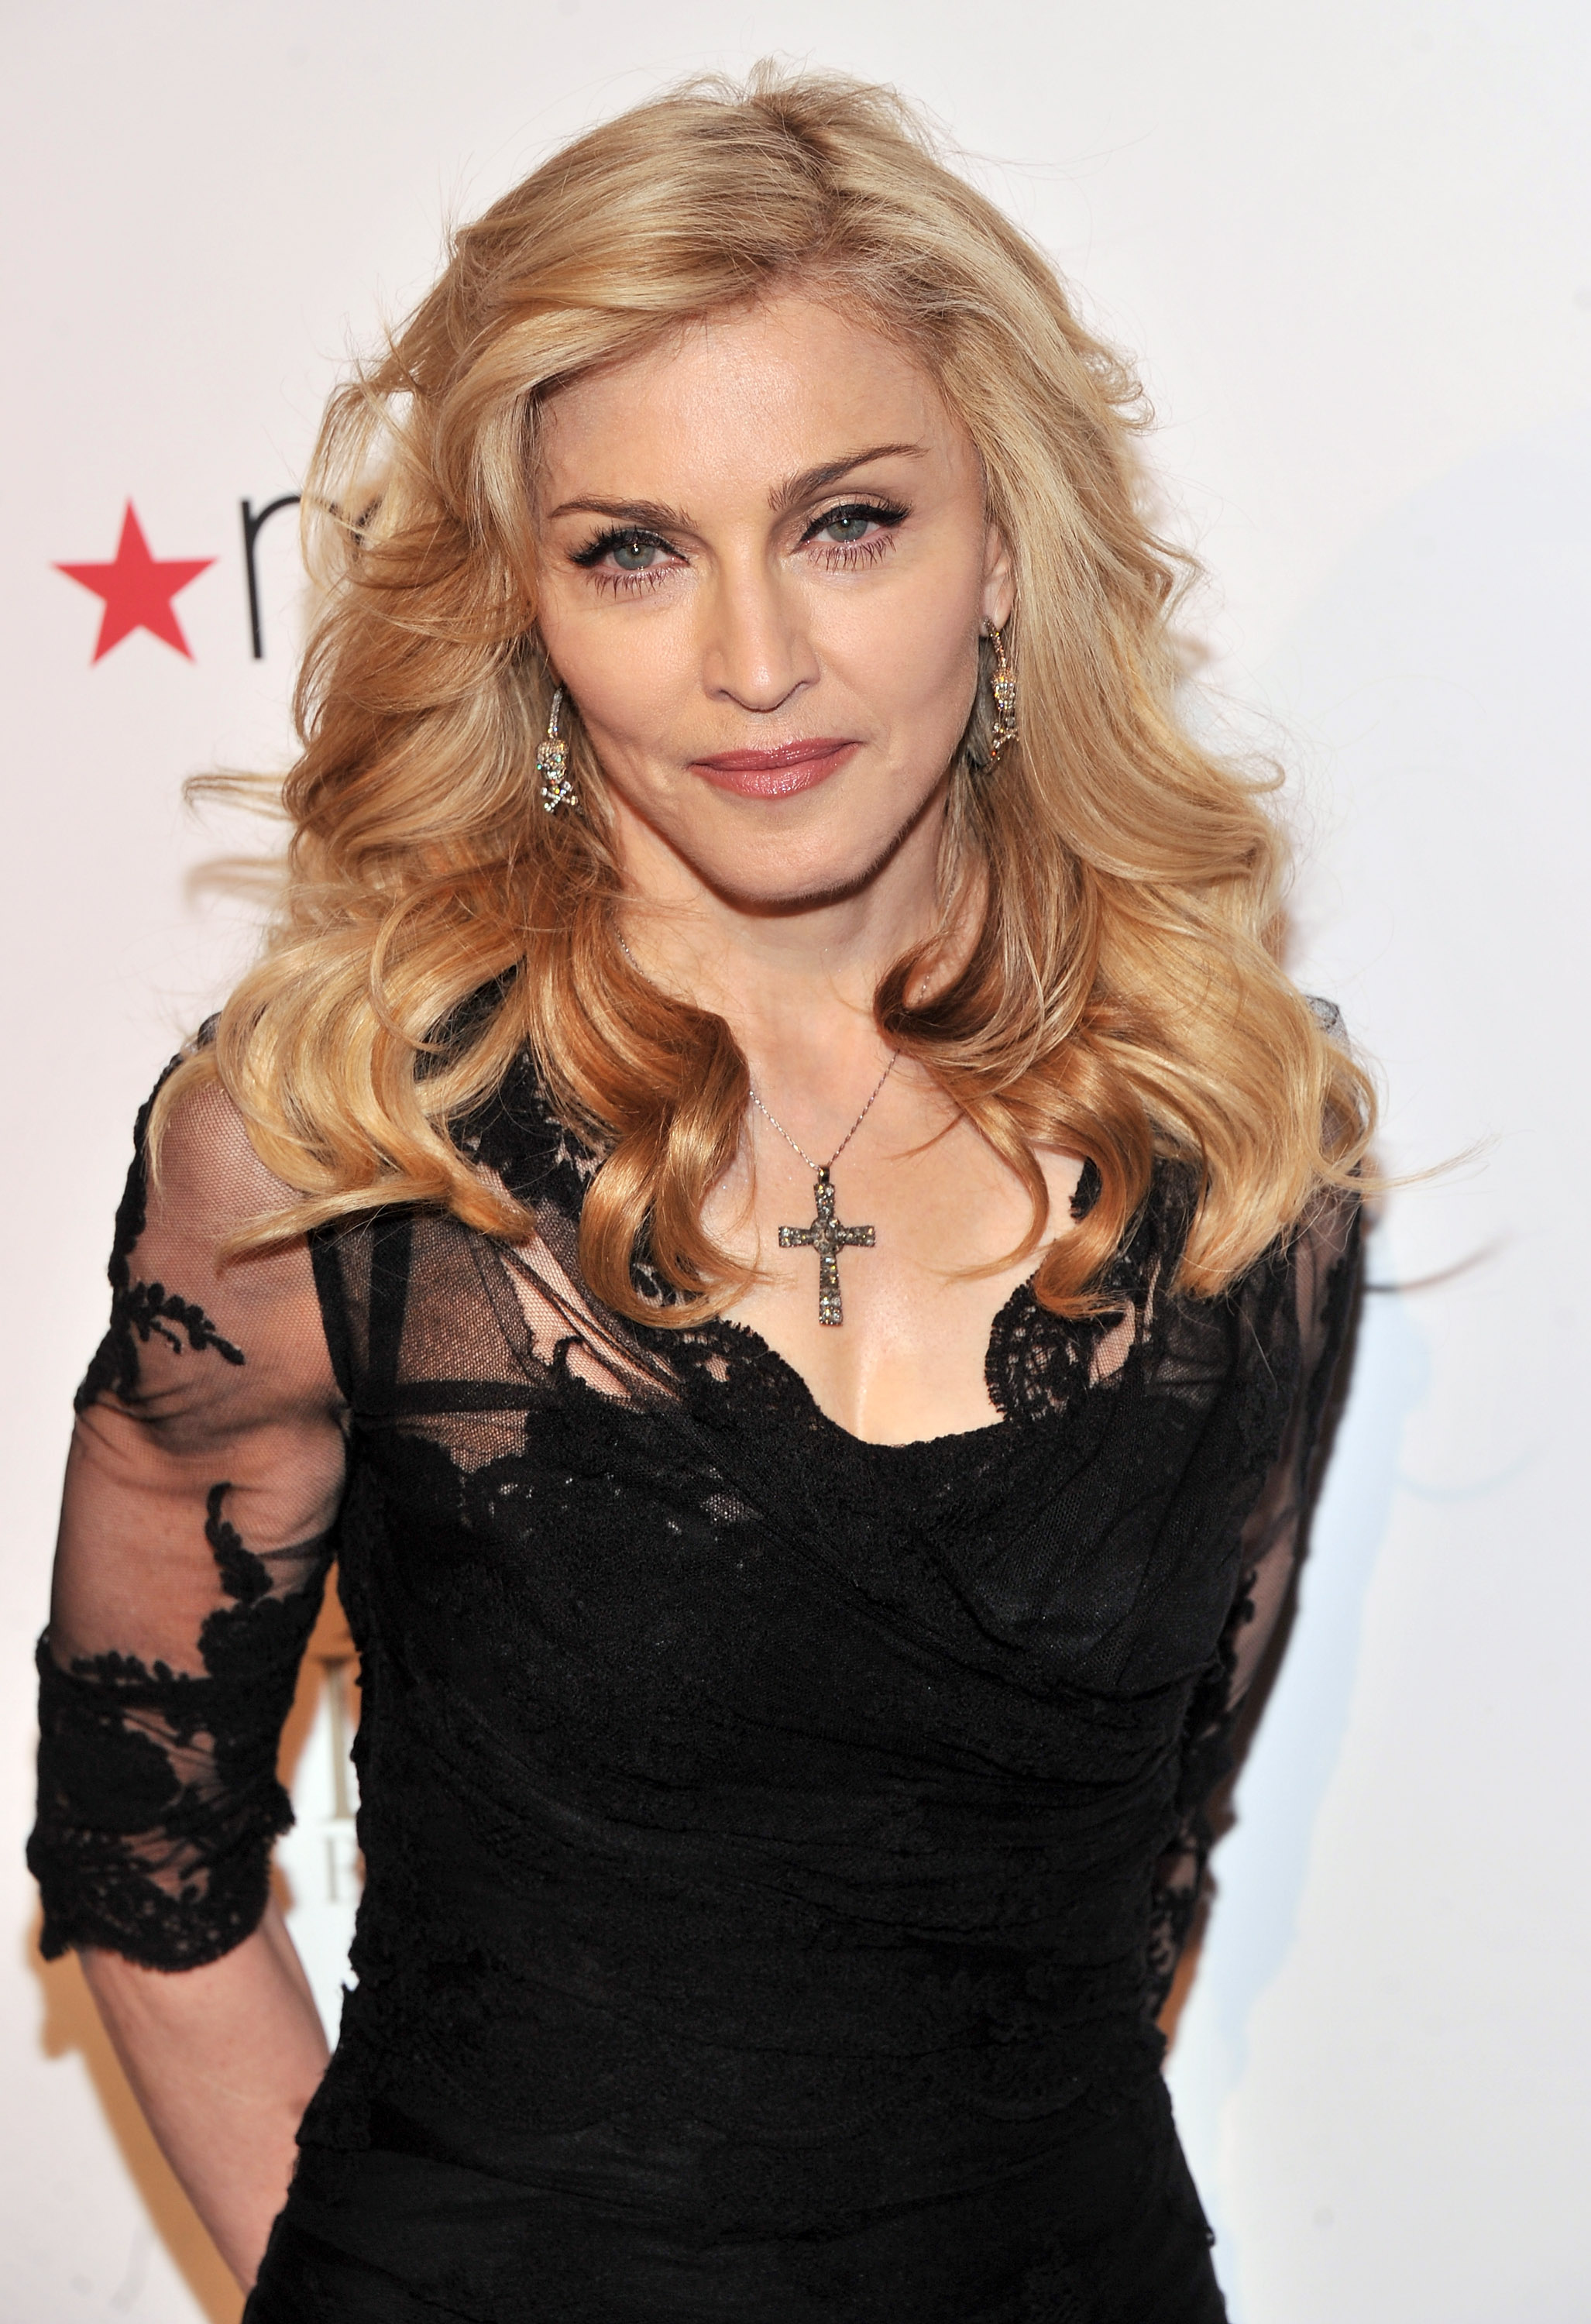 Singer Madonna was amongst the highest donors for the fund (Source: Getty Images)